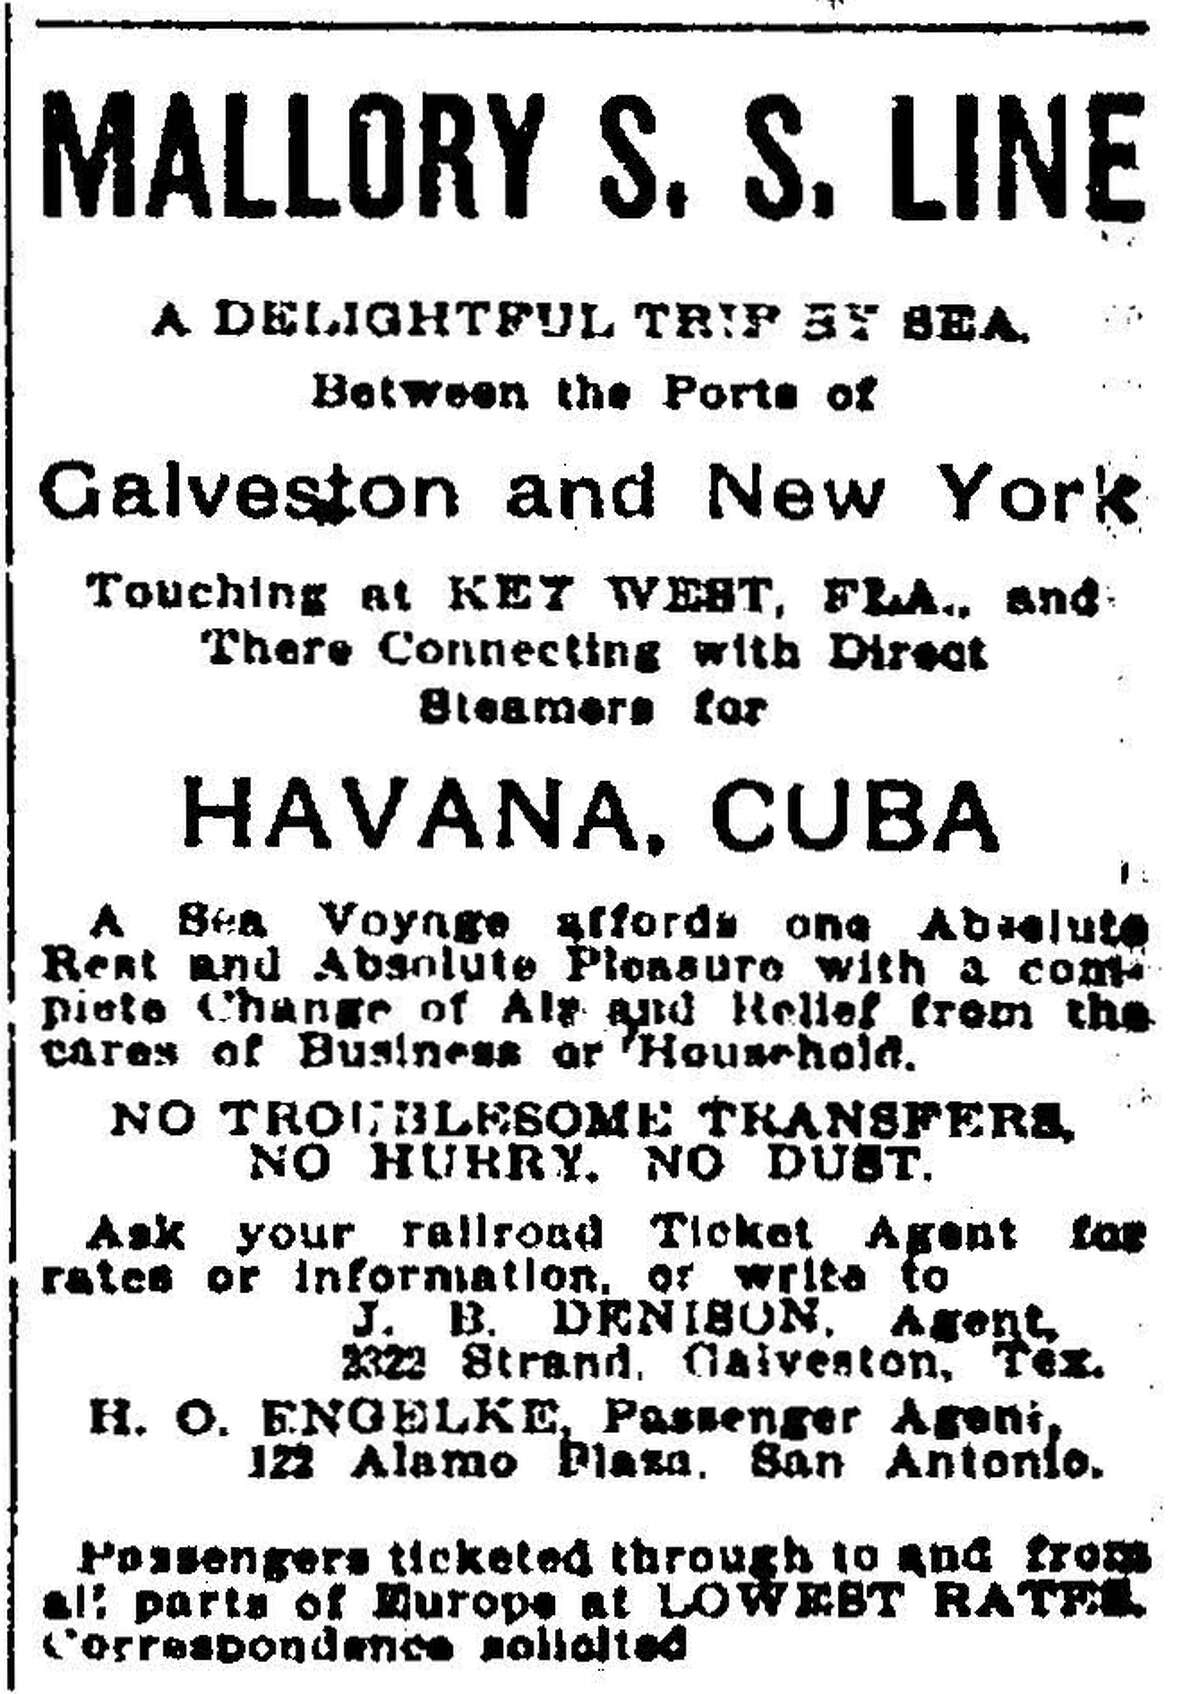 The Mallory S.S. Line was planning excursions from Galveston to Cuba, Florida and New York, according to the ad that appeared on the Dec. 9, 1900, front page, which also carried headlines about the hurricane that did tremendous damage to Galveston